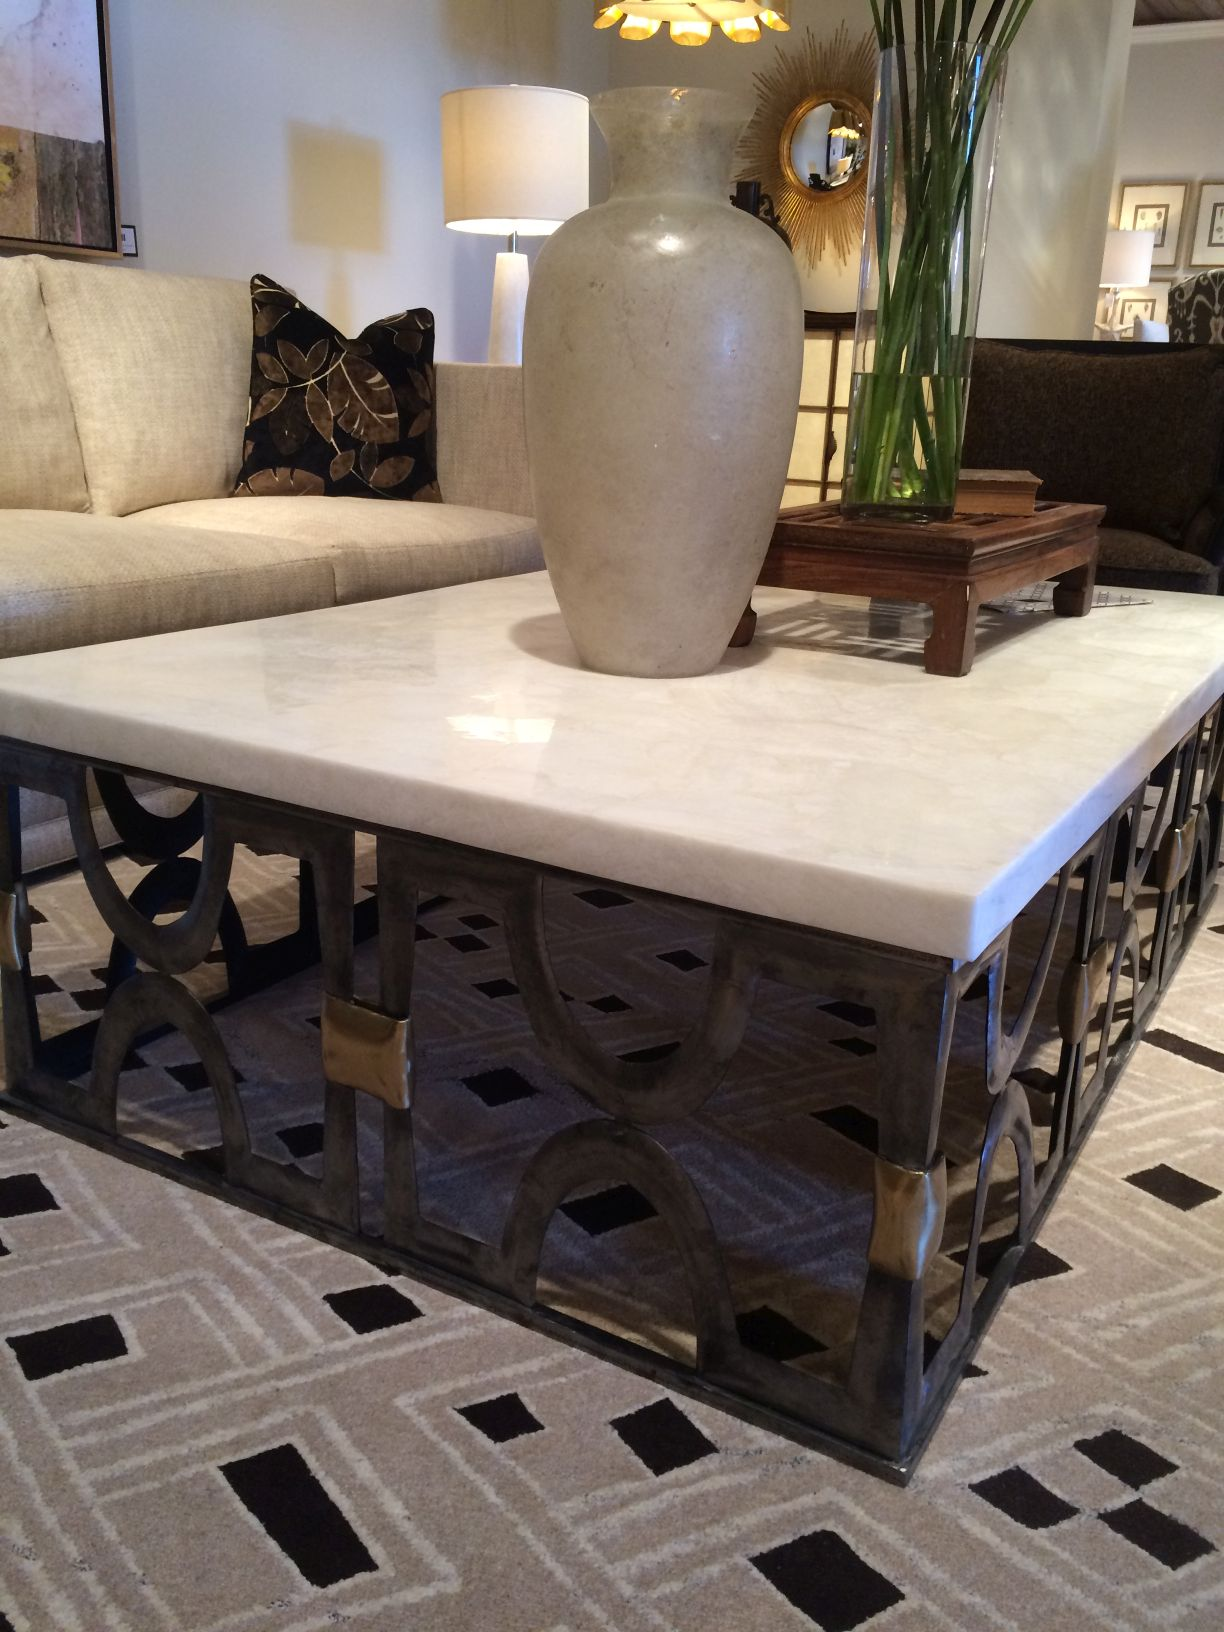 white onyx stone top coffee marble side table furniture end tables and large acme sofa small behind chairs made from pallets dog cage for dogs contemporary with storage wood cube